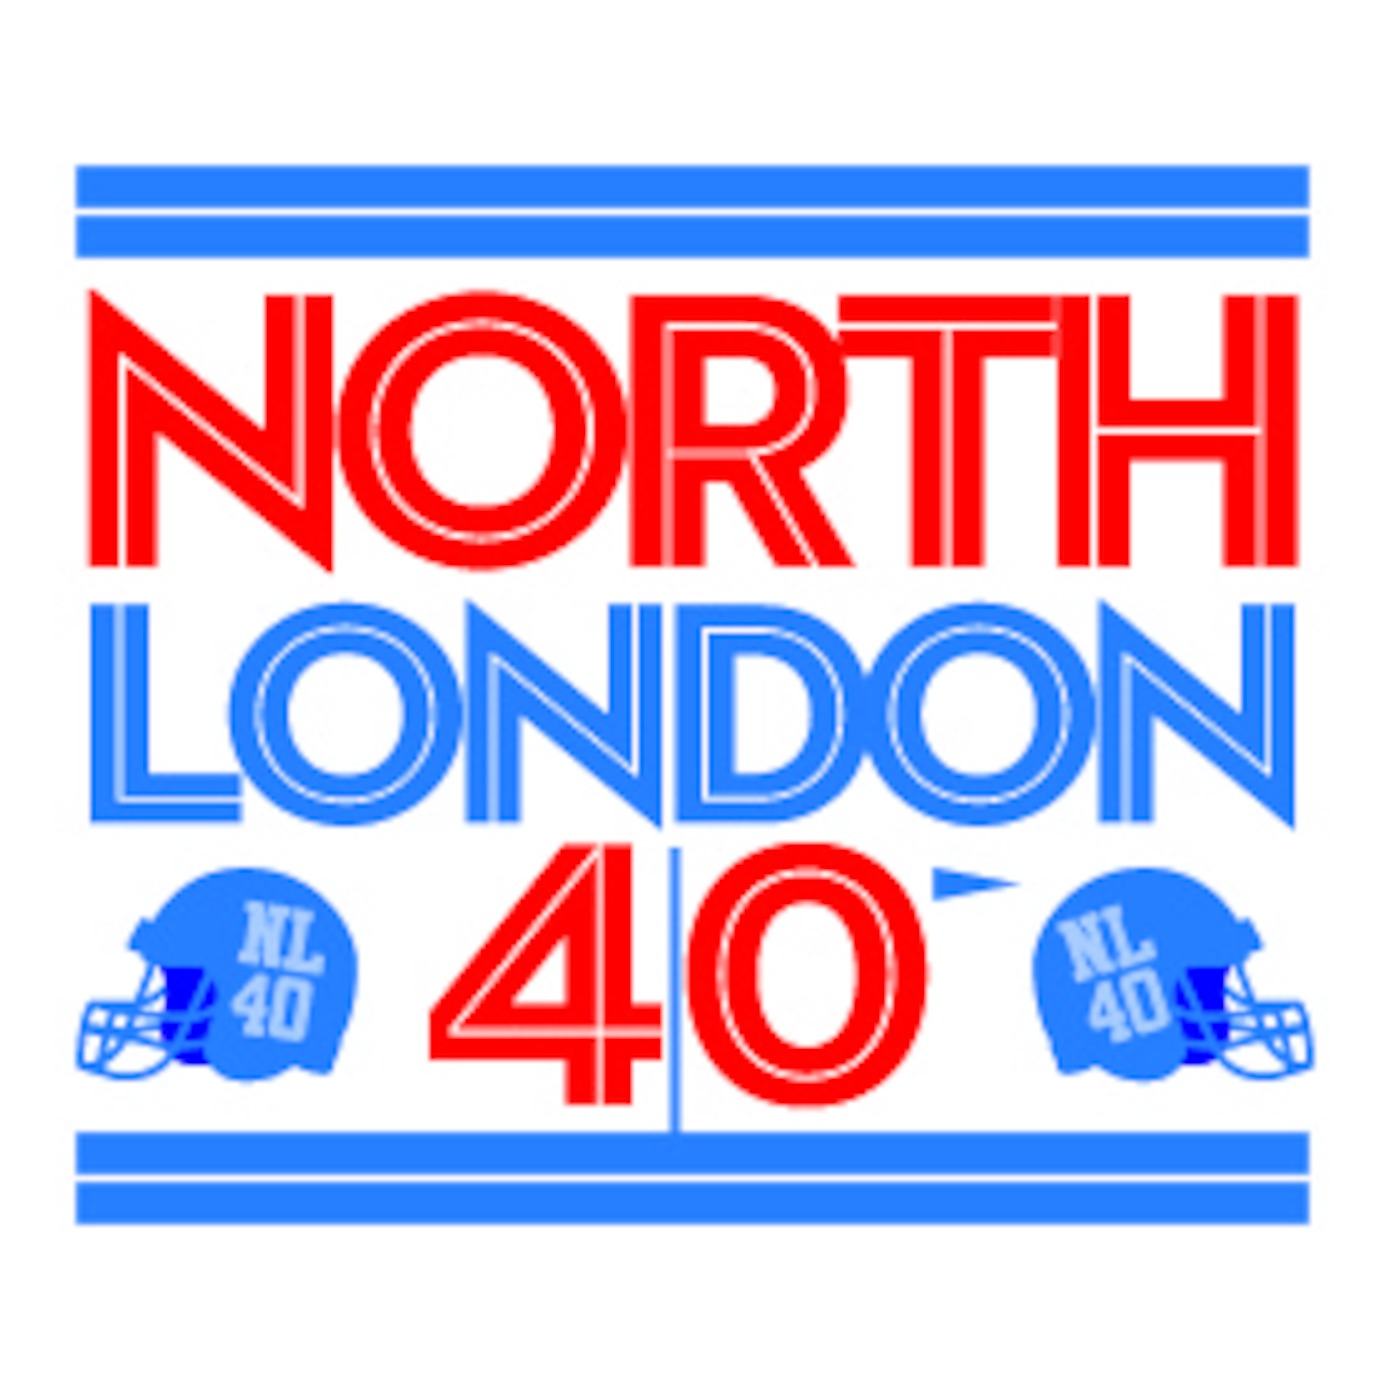 North London 40